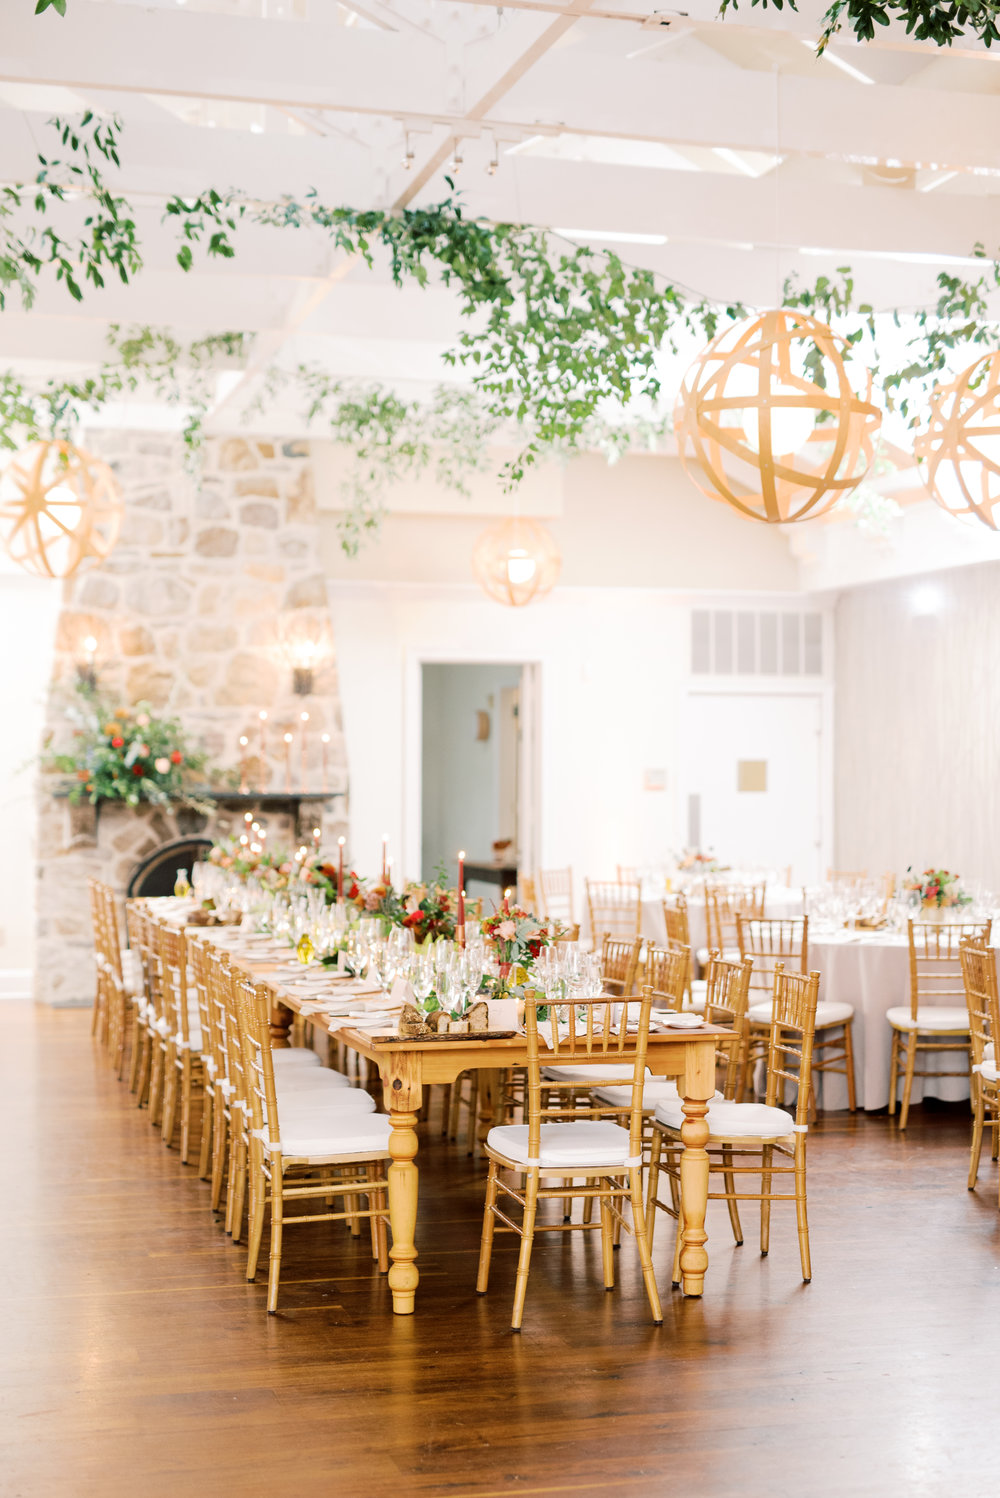 Romantic candle-lit table setting from modern autumn wedding at Pomme, Radnor PA. Pomme wedding photographer.